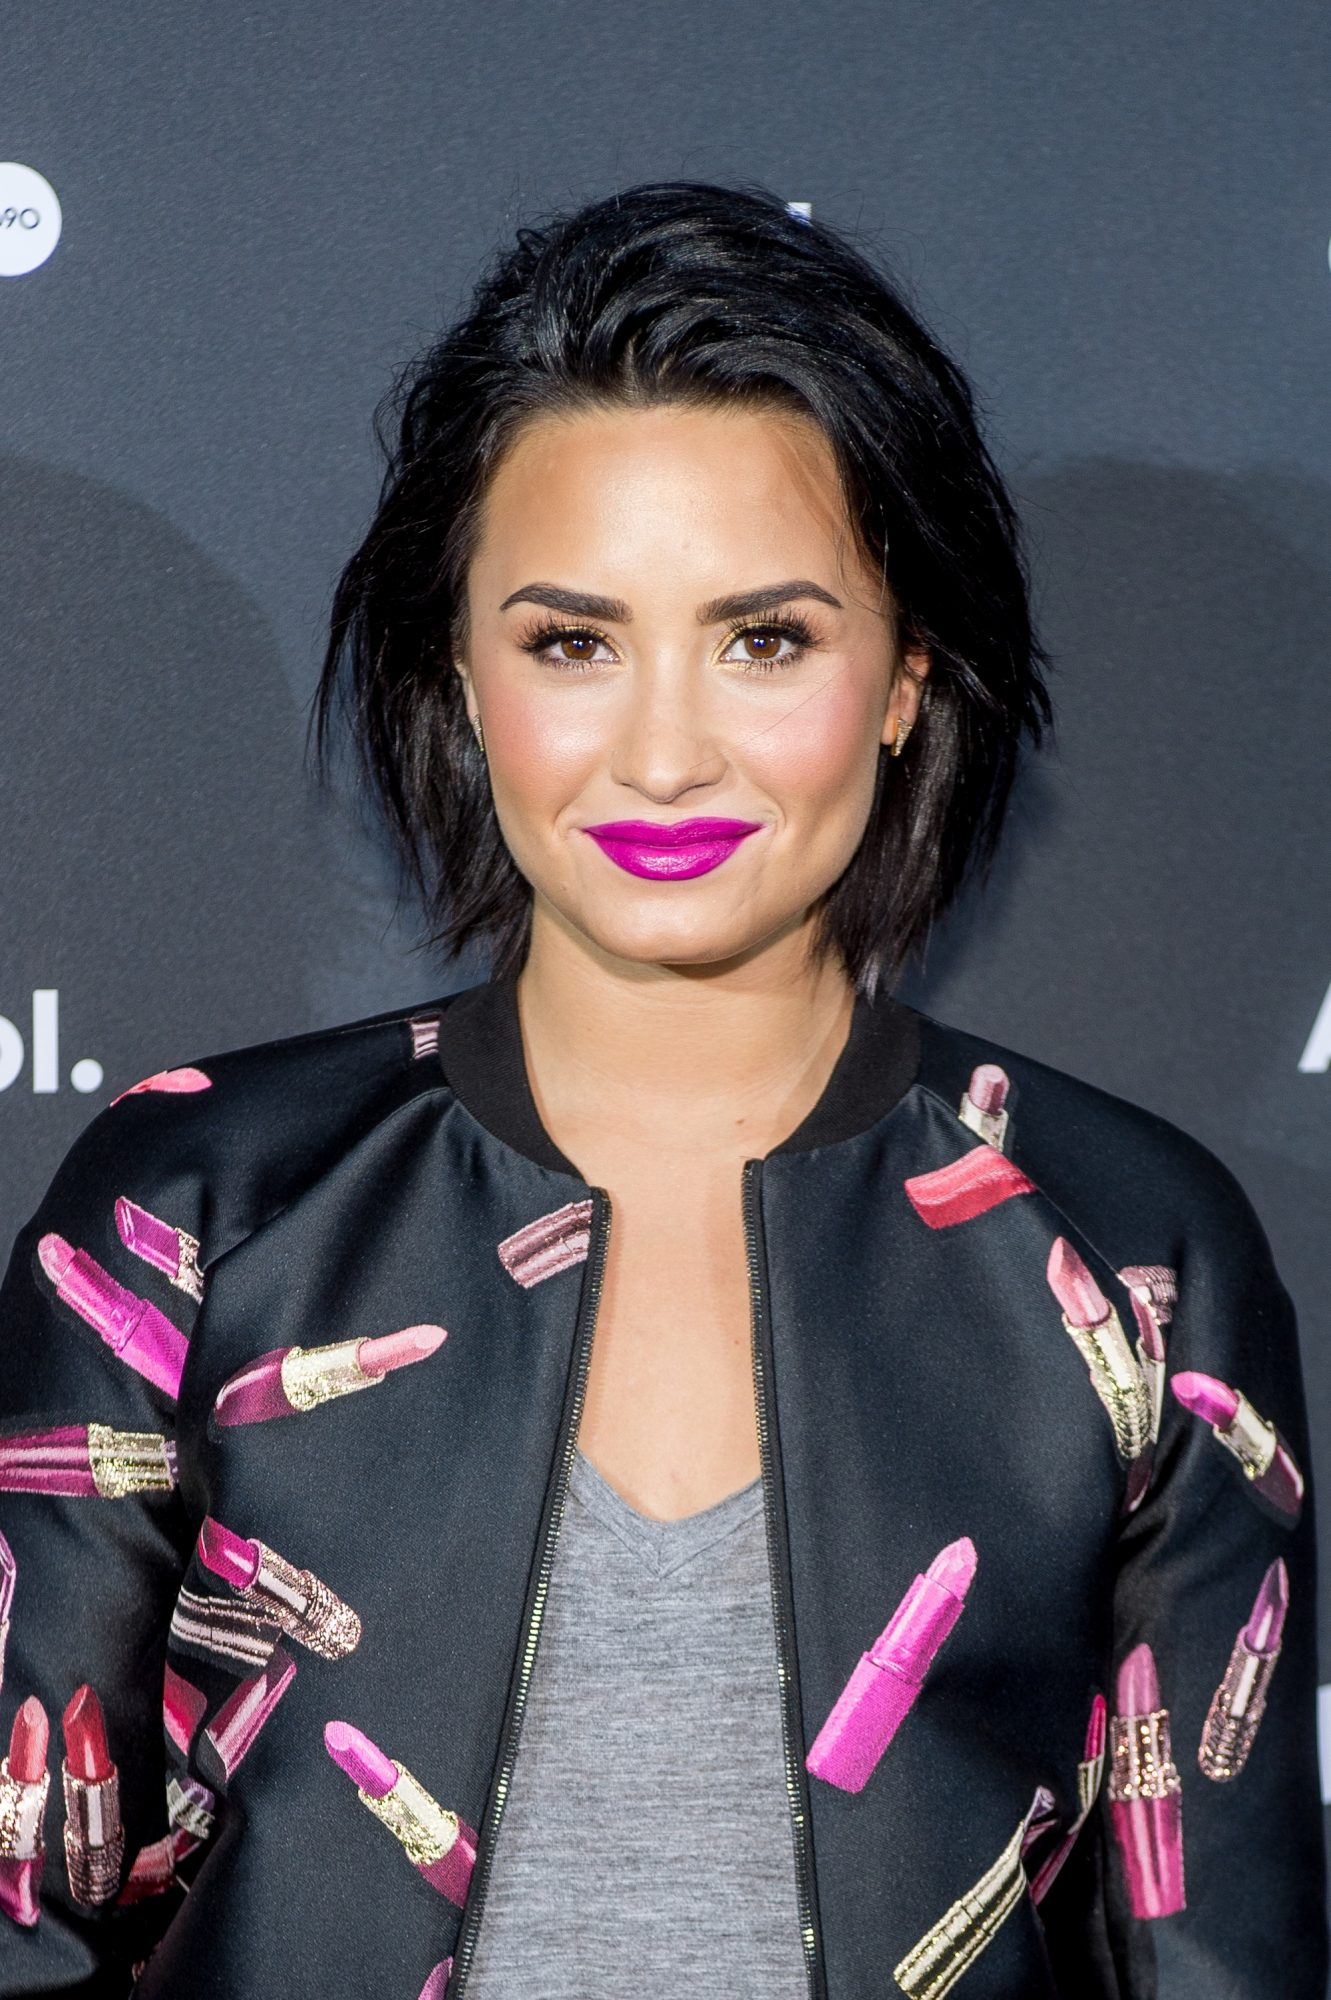 Demi Lovato's 2-Year-Old Makeup Artist Could Pass as a Professional